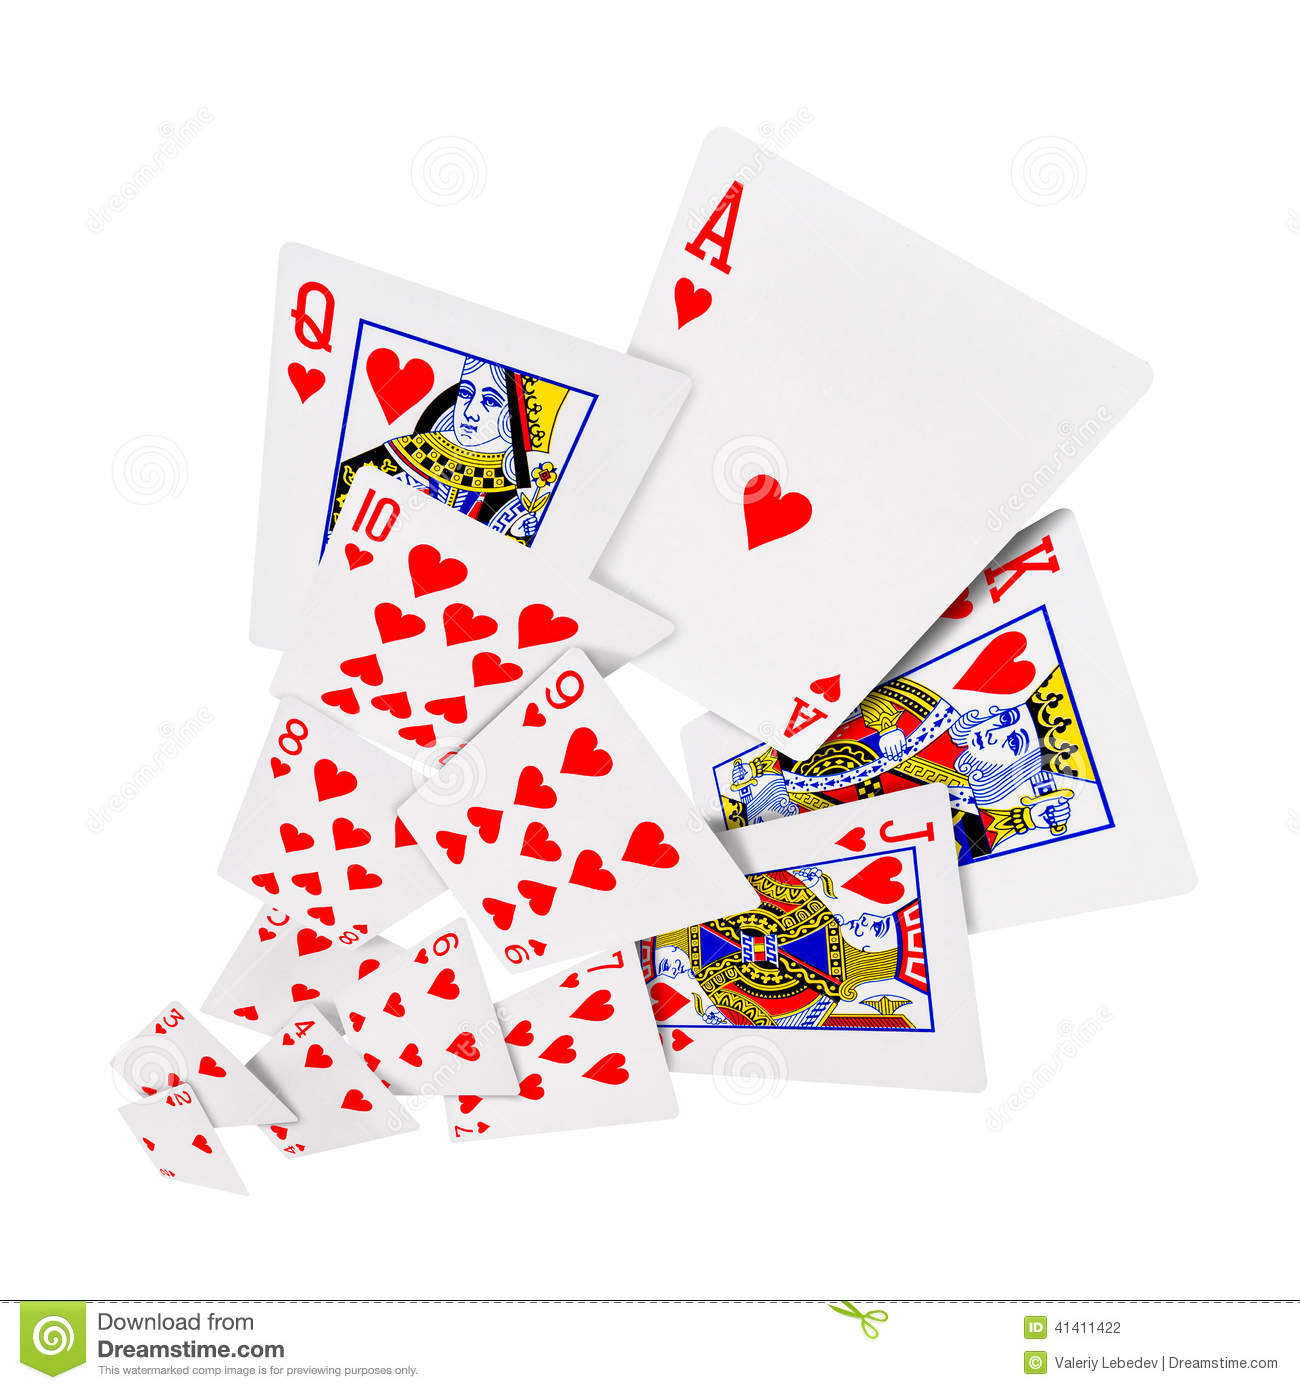 Black jack jeu de carte